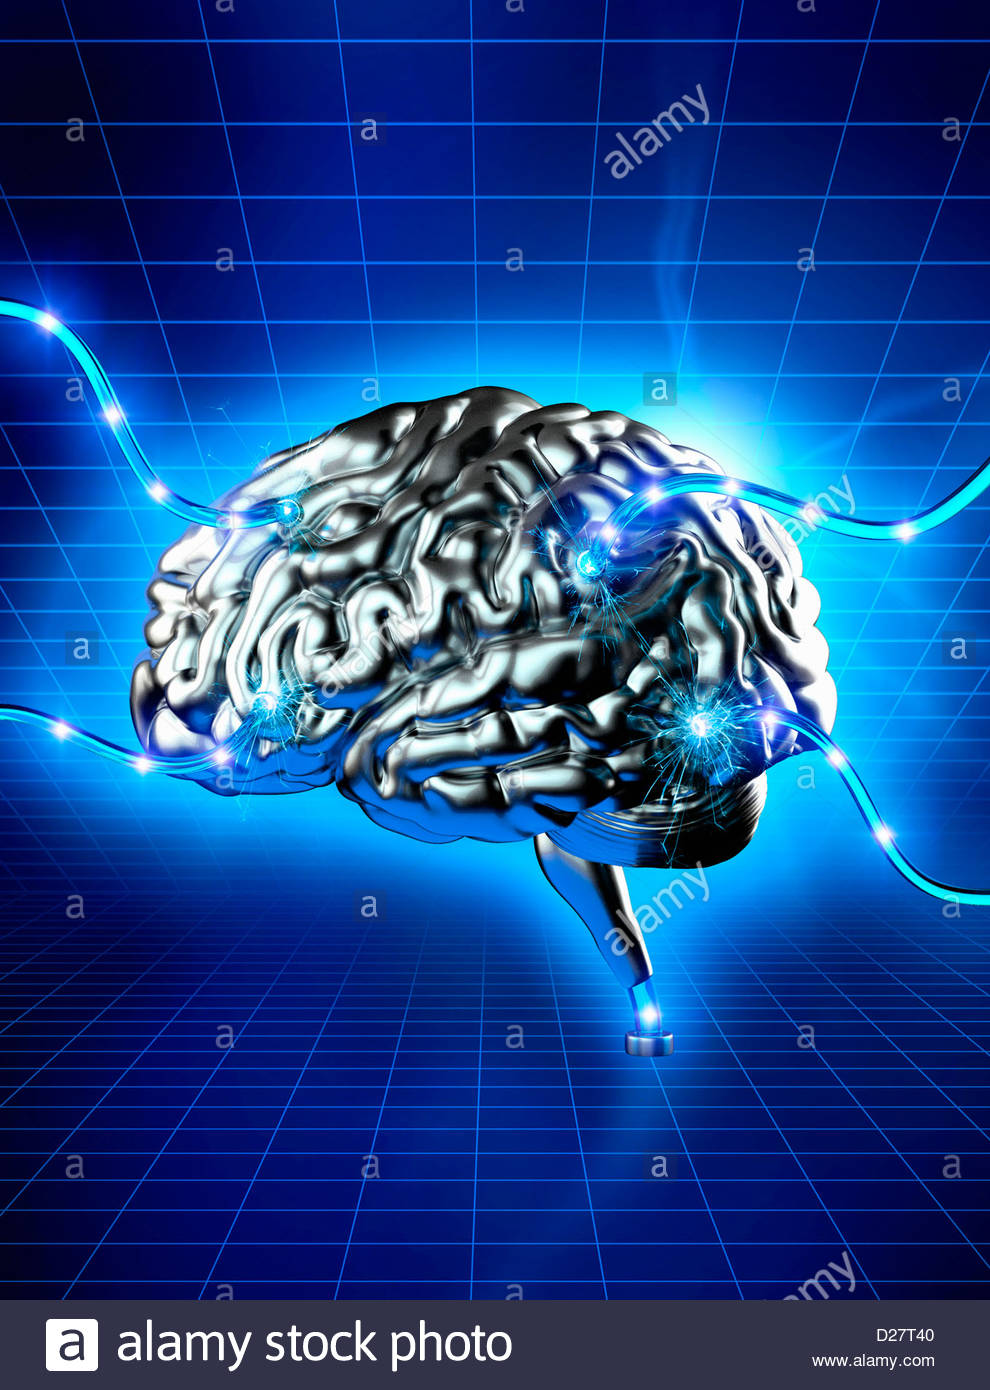 Sparks from wires connected to human brain - Stock Image